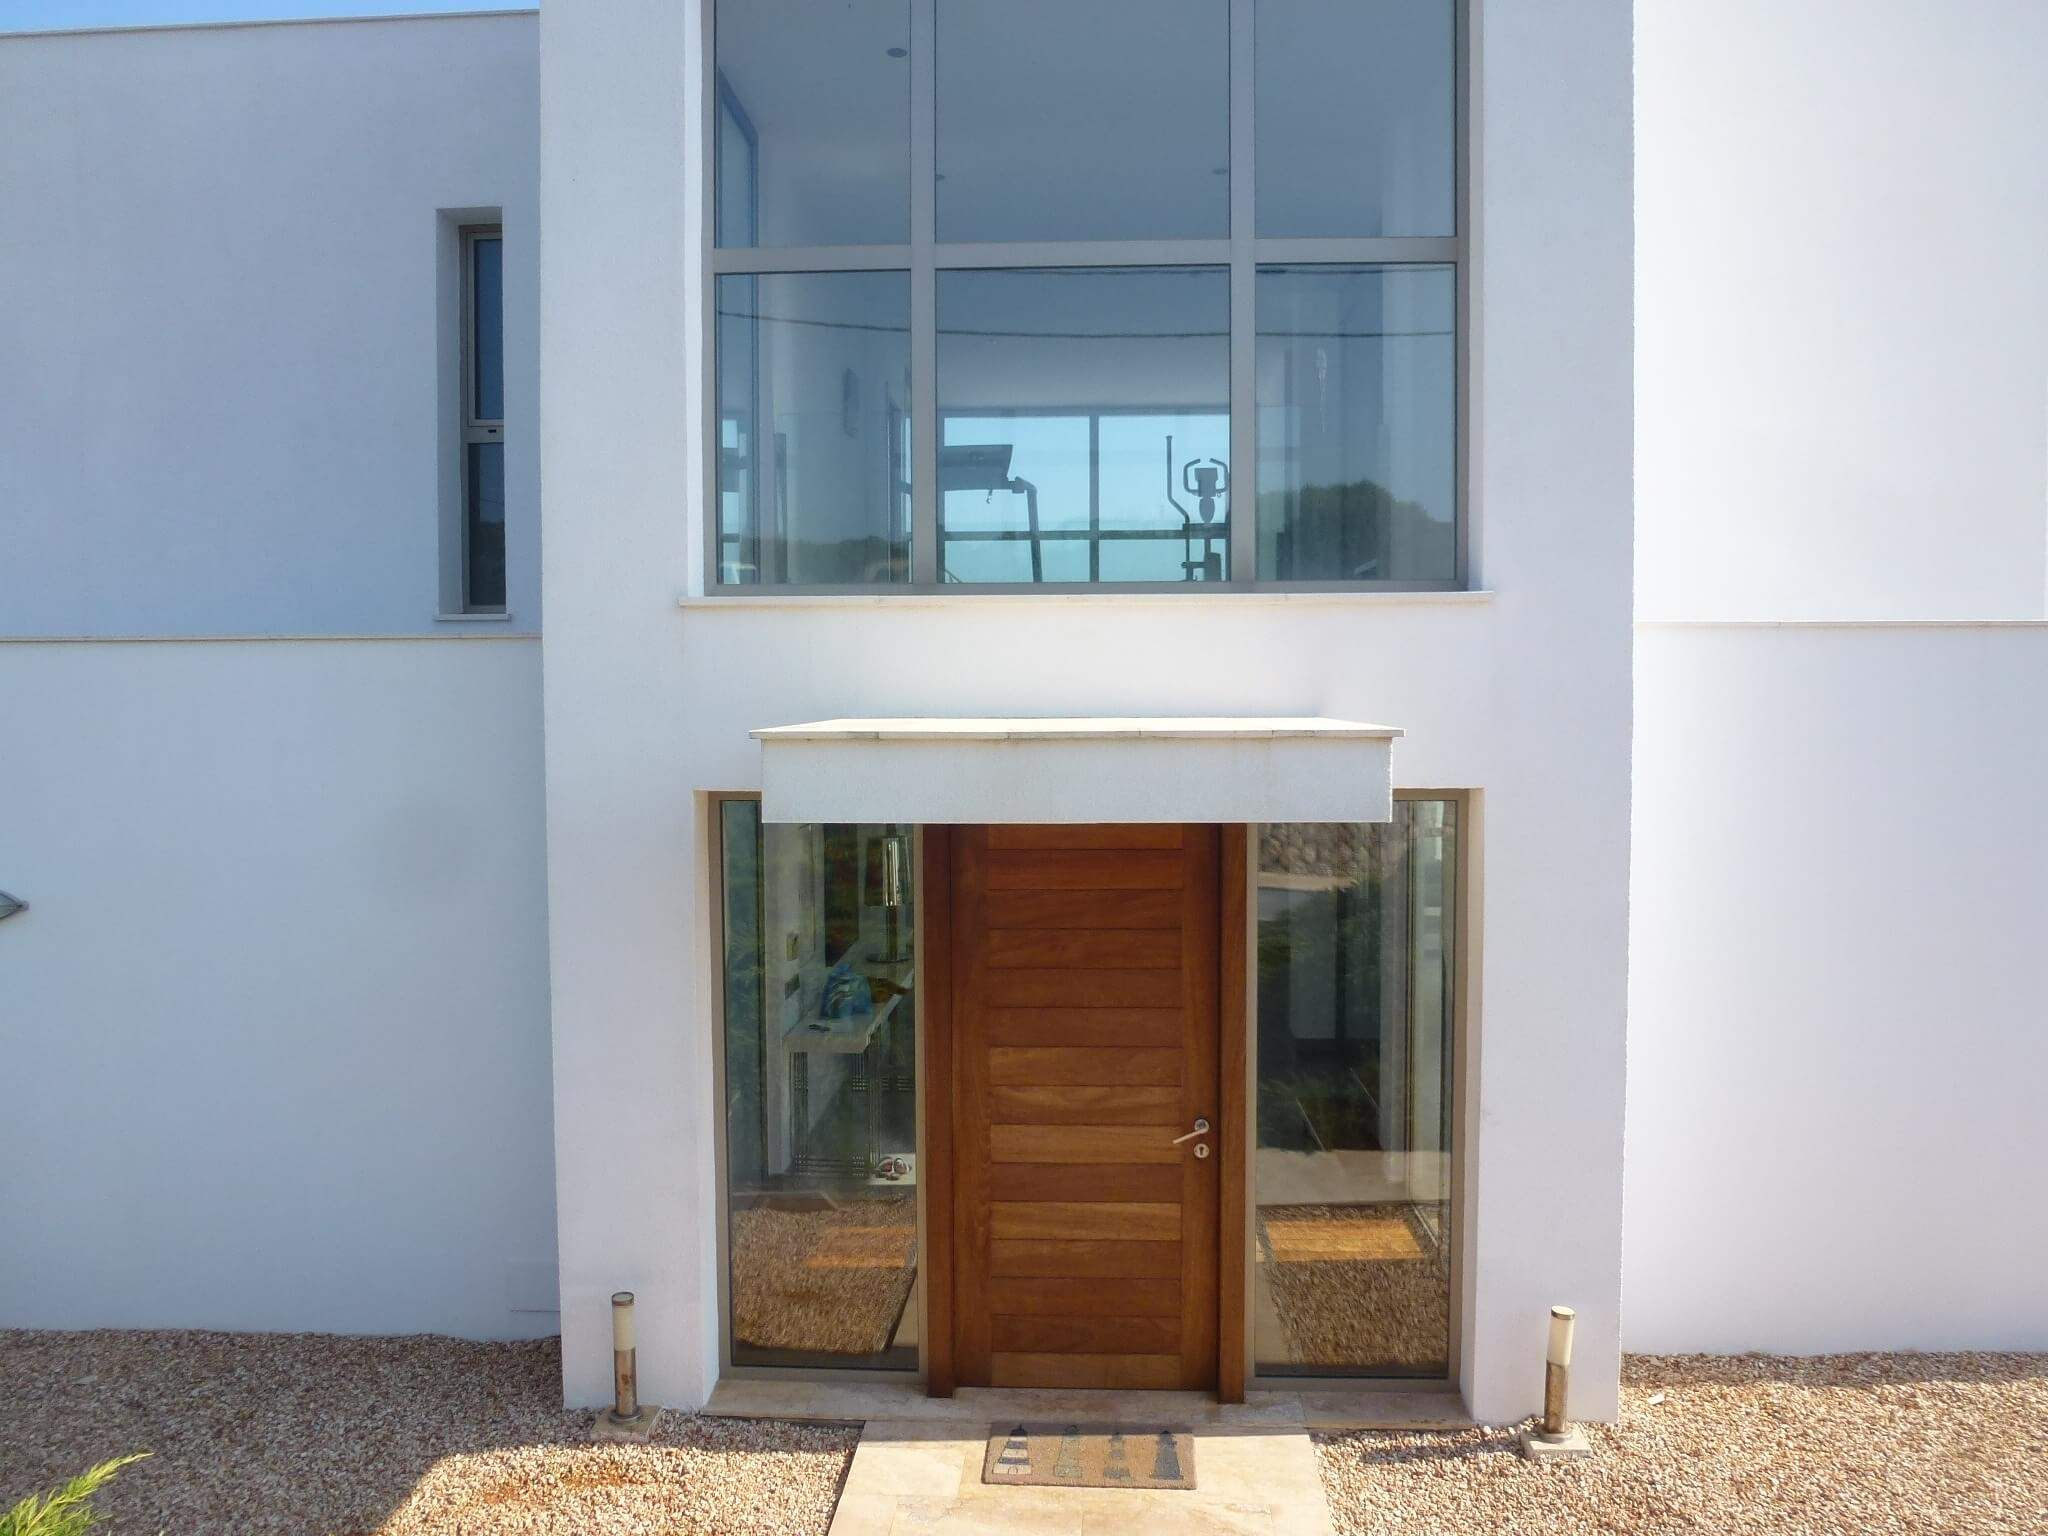 Casa Pitiusa, 5 Bedroom rate, 5 bedroom villa in Mahon, San Luis & South East, Menorca Photo #20